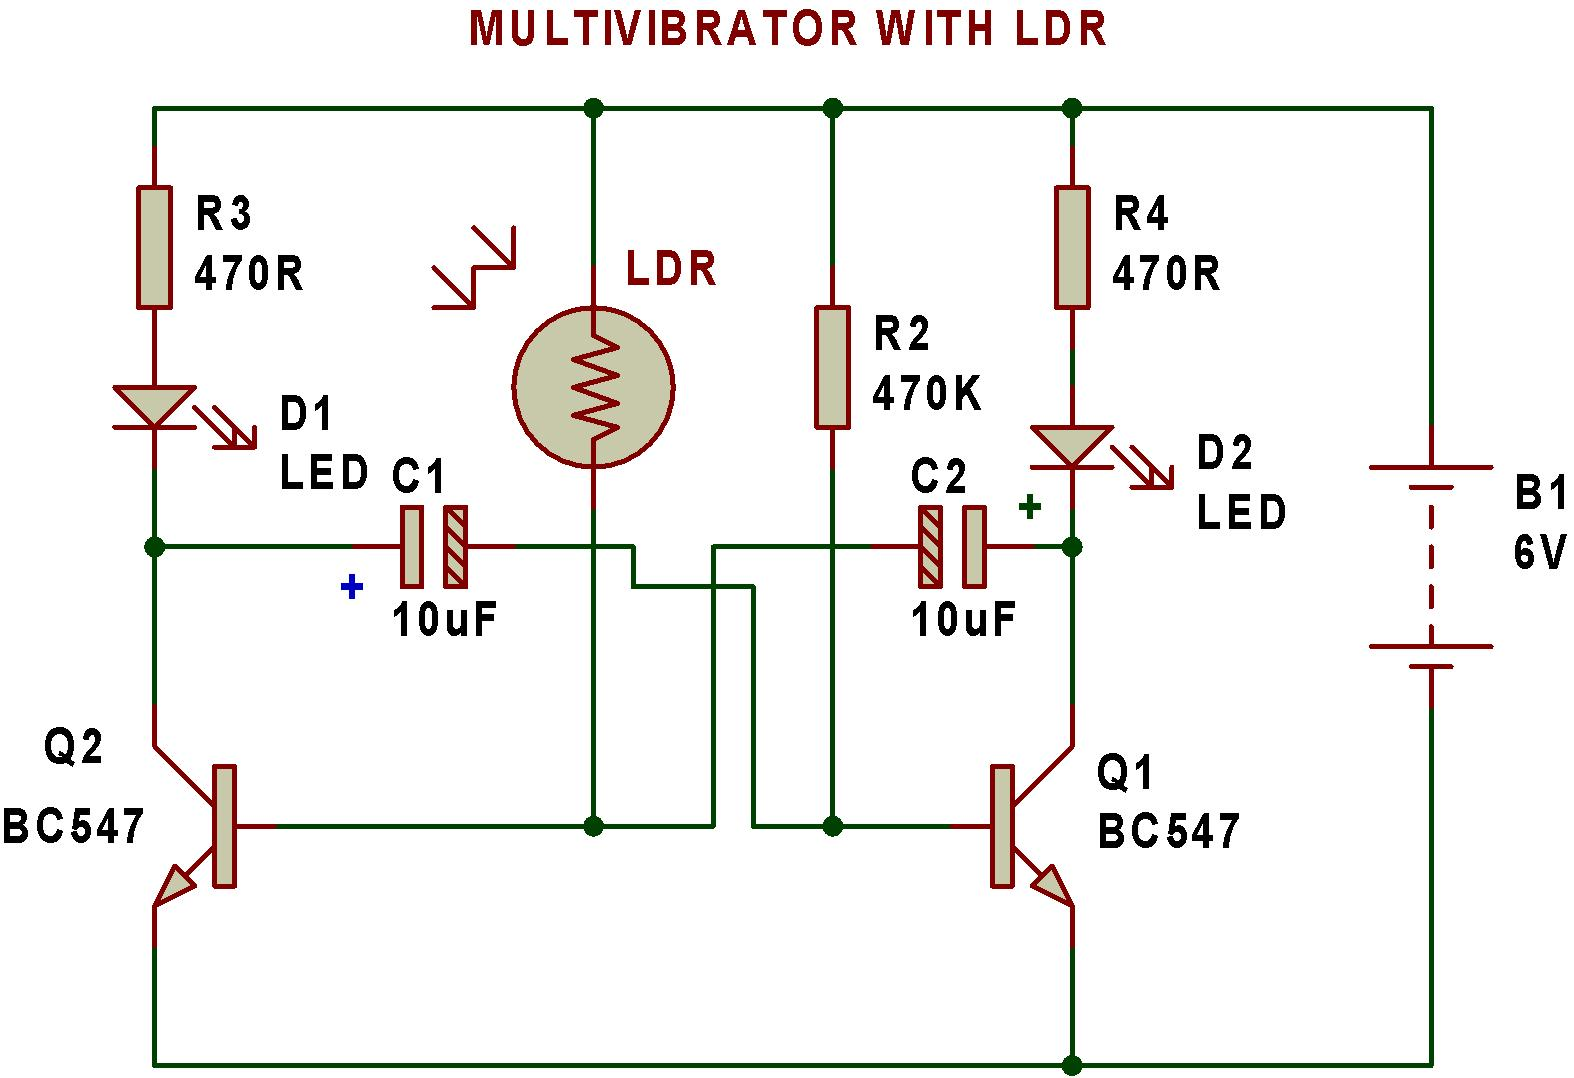 Multivibrator Buildcircuit Electronics Picture Of Building The Oscillator Circuits